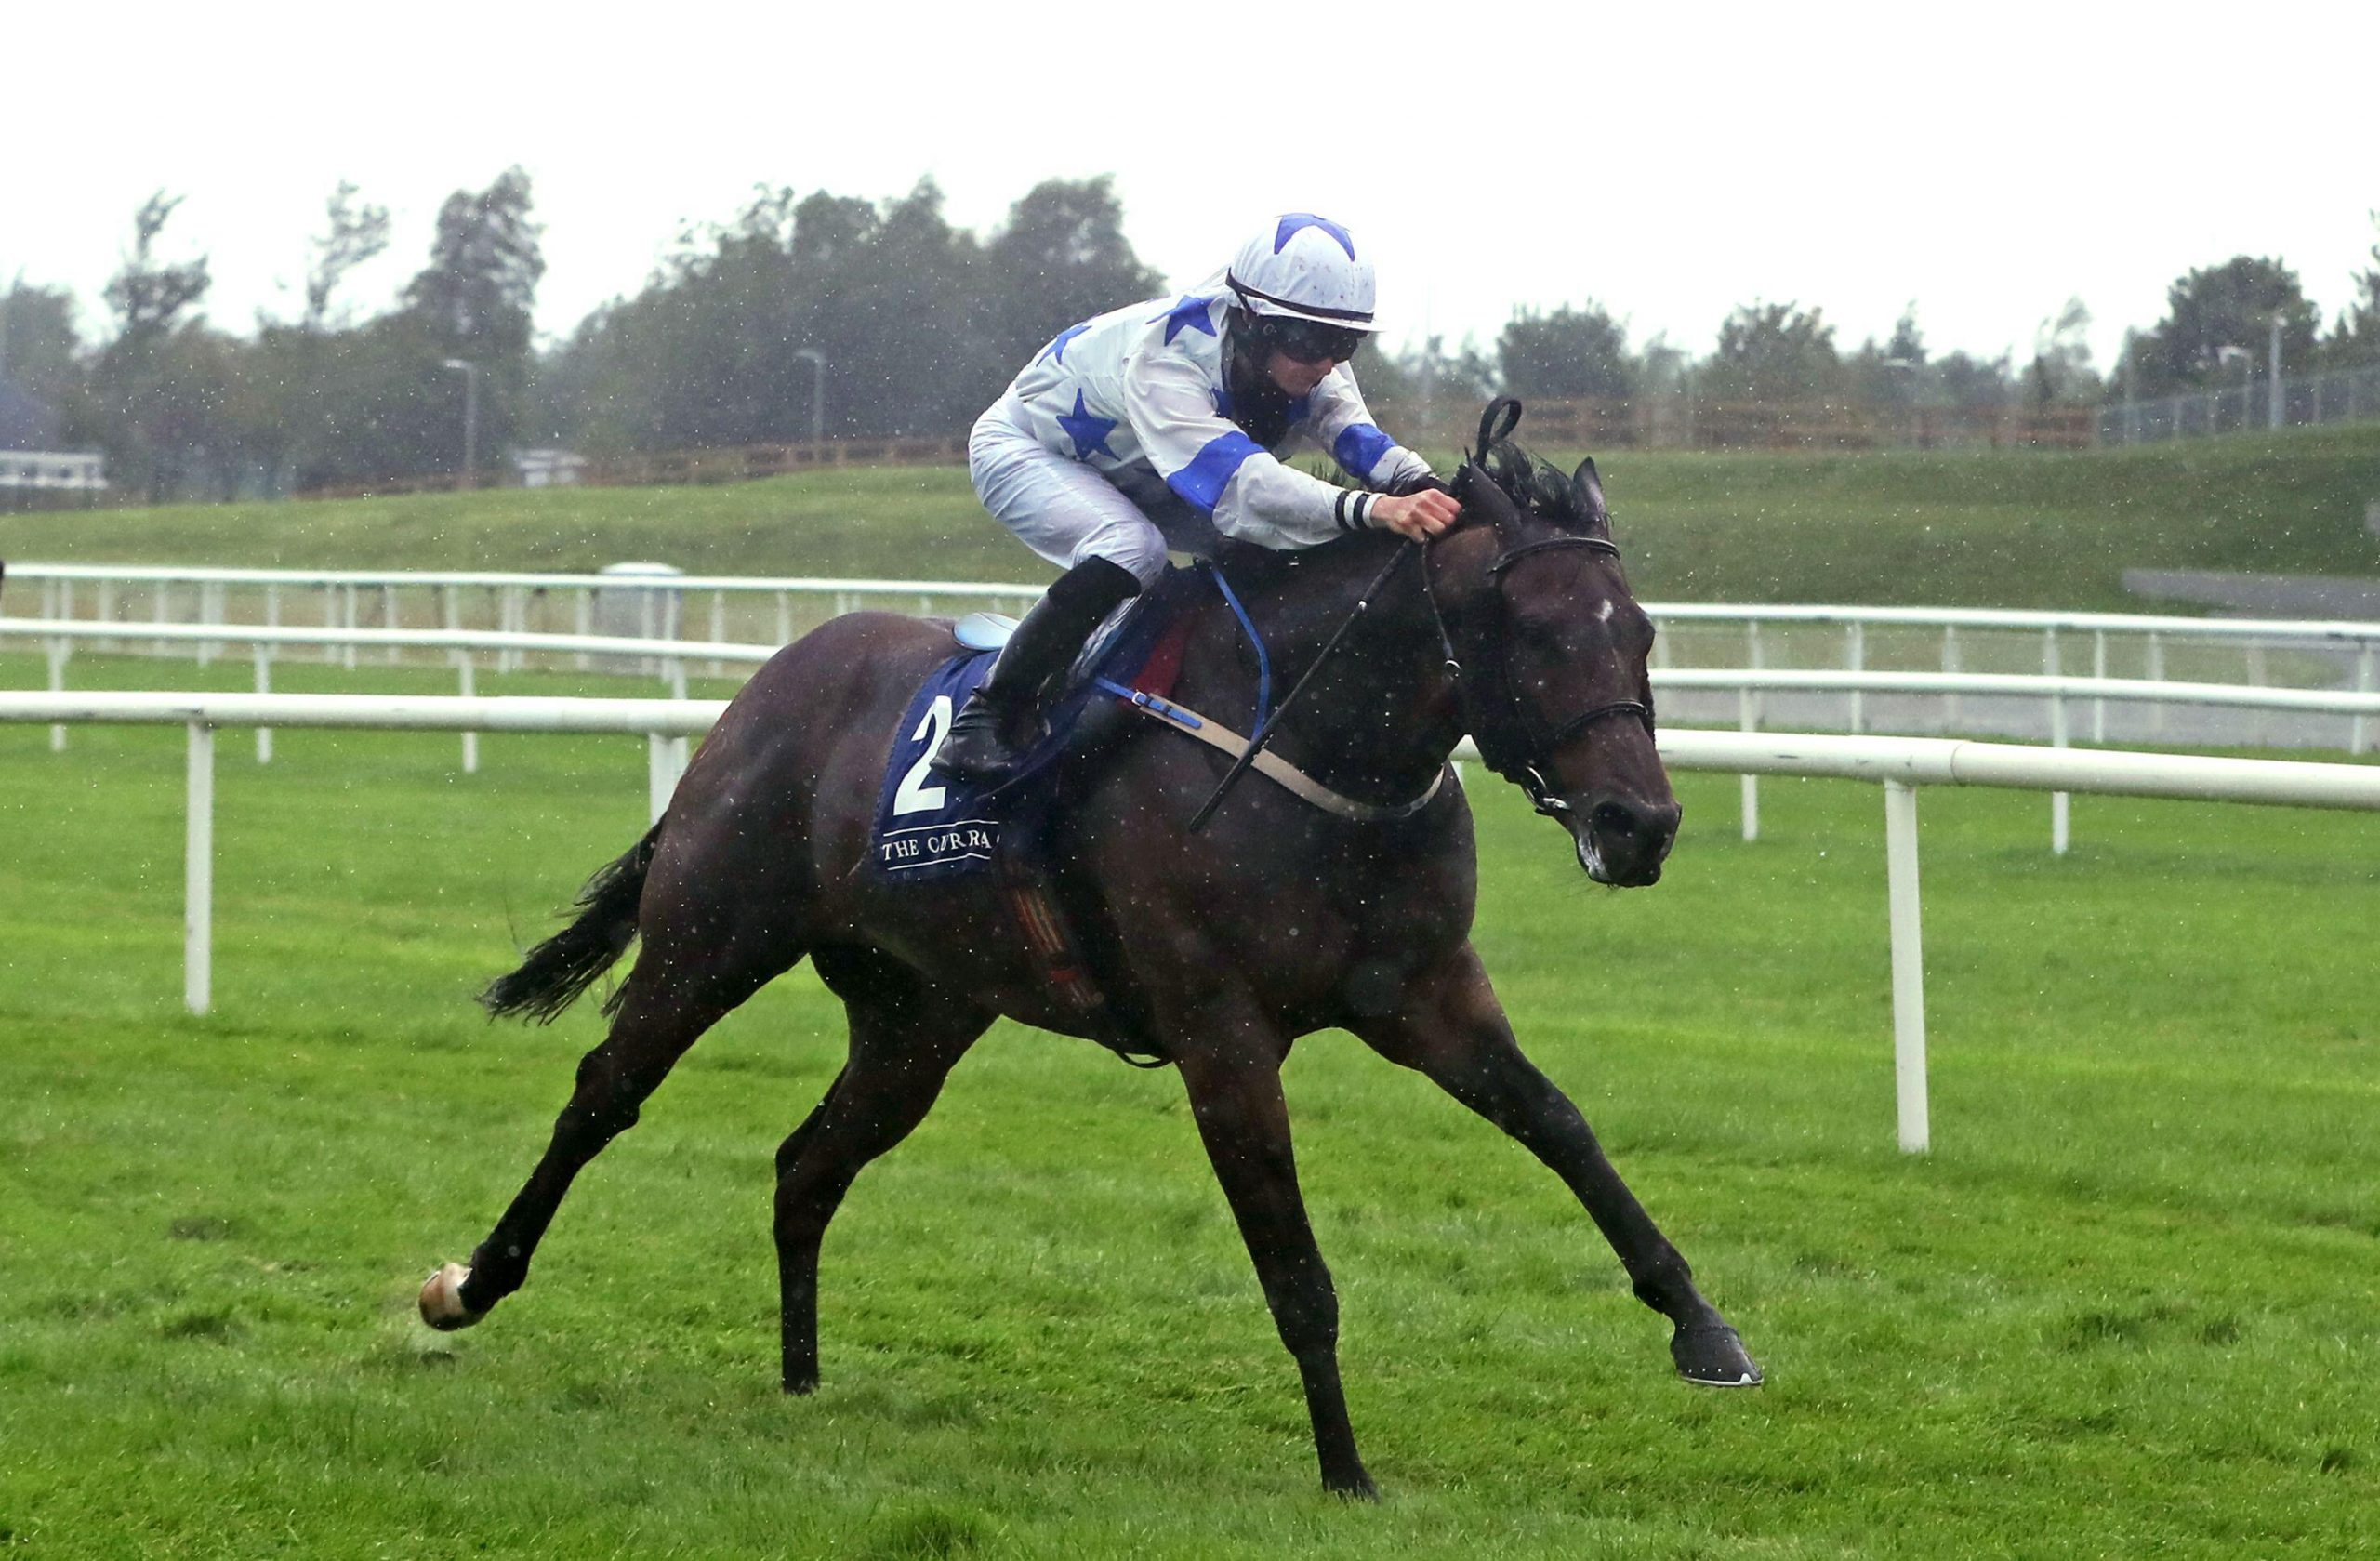 Make A Challenge ridden by Joe Doyle on their way to winning the A.R.M. Holding Curragh Sprint Stakes at Curragh Racecourse.